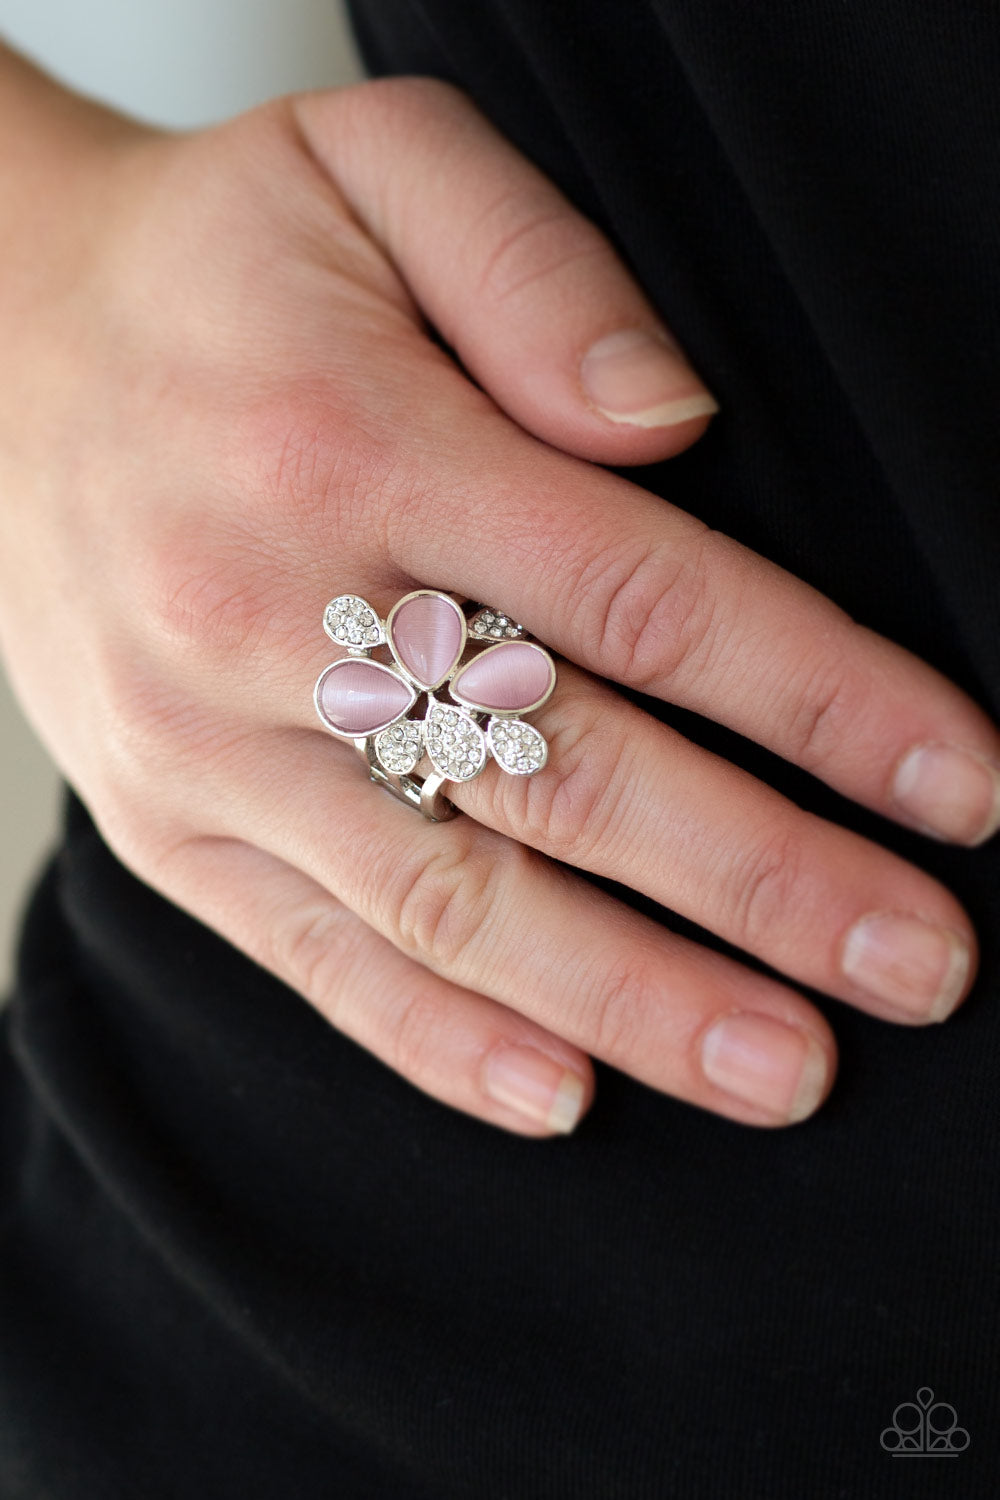 Paparazzi Jewelry & Accessories - Diamond Daisies - Pink Ring. Bling By Titia Boutique